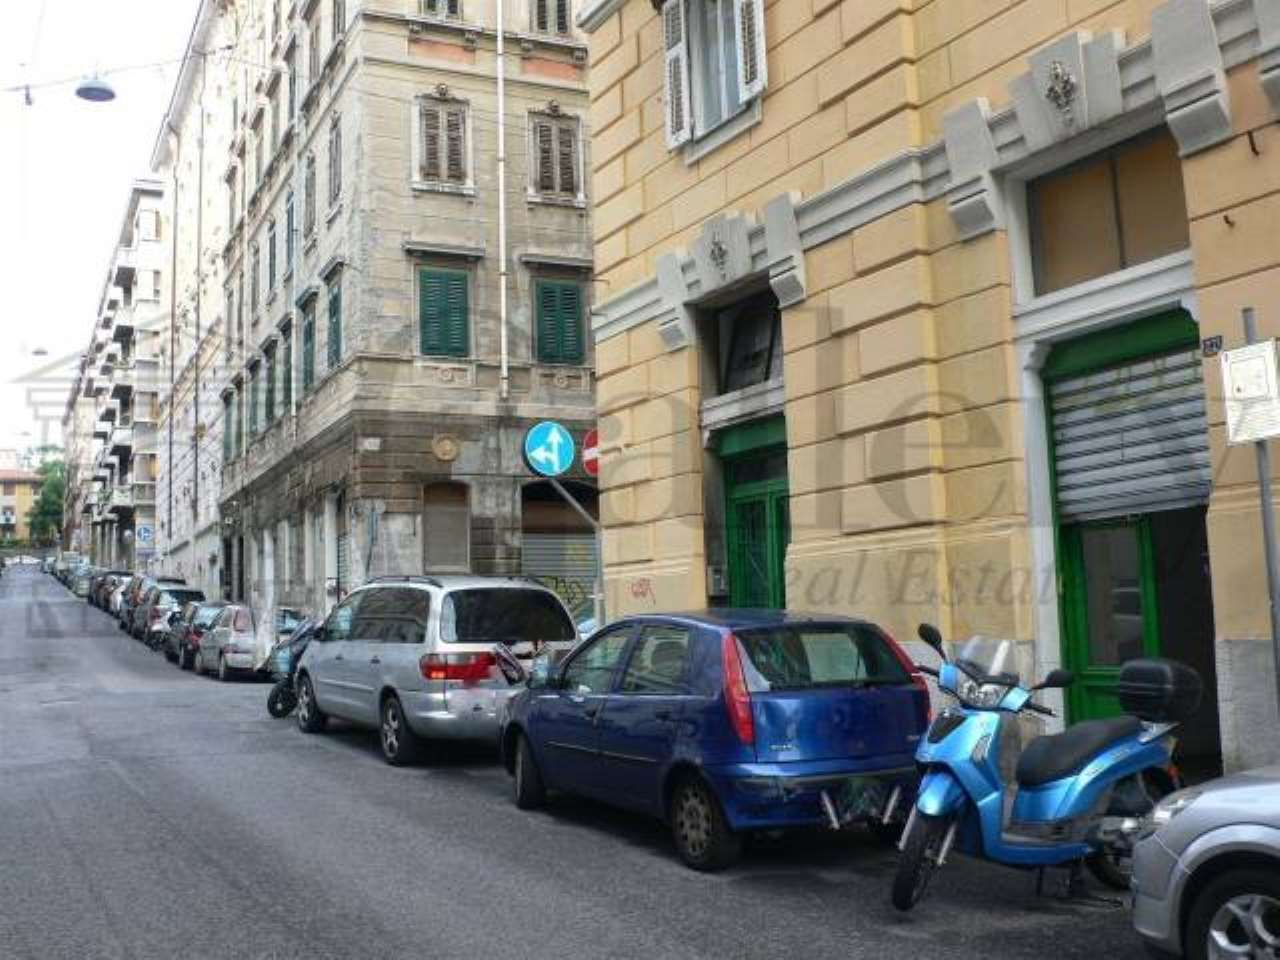 Immobile Commerciale in affitto a Trieste-http://media.getrix.it/1/6809/2577759624.jpg